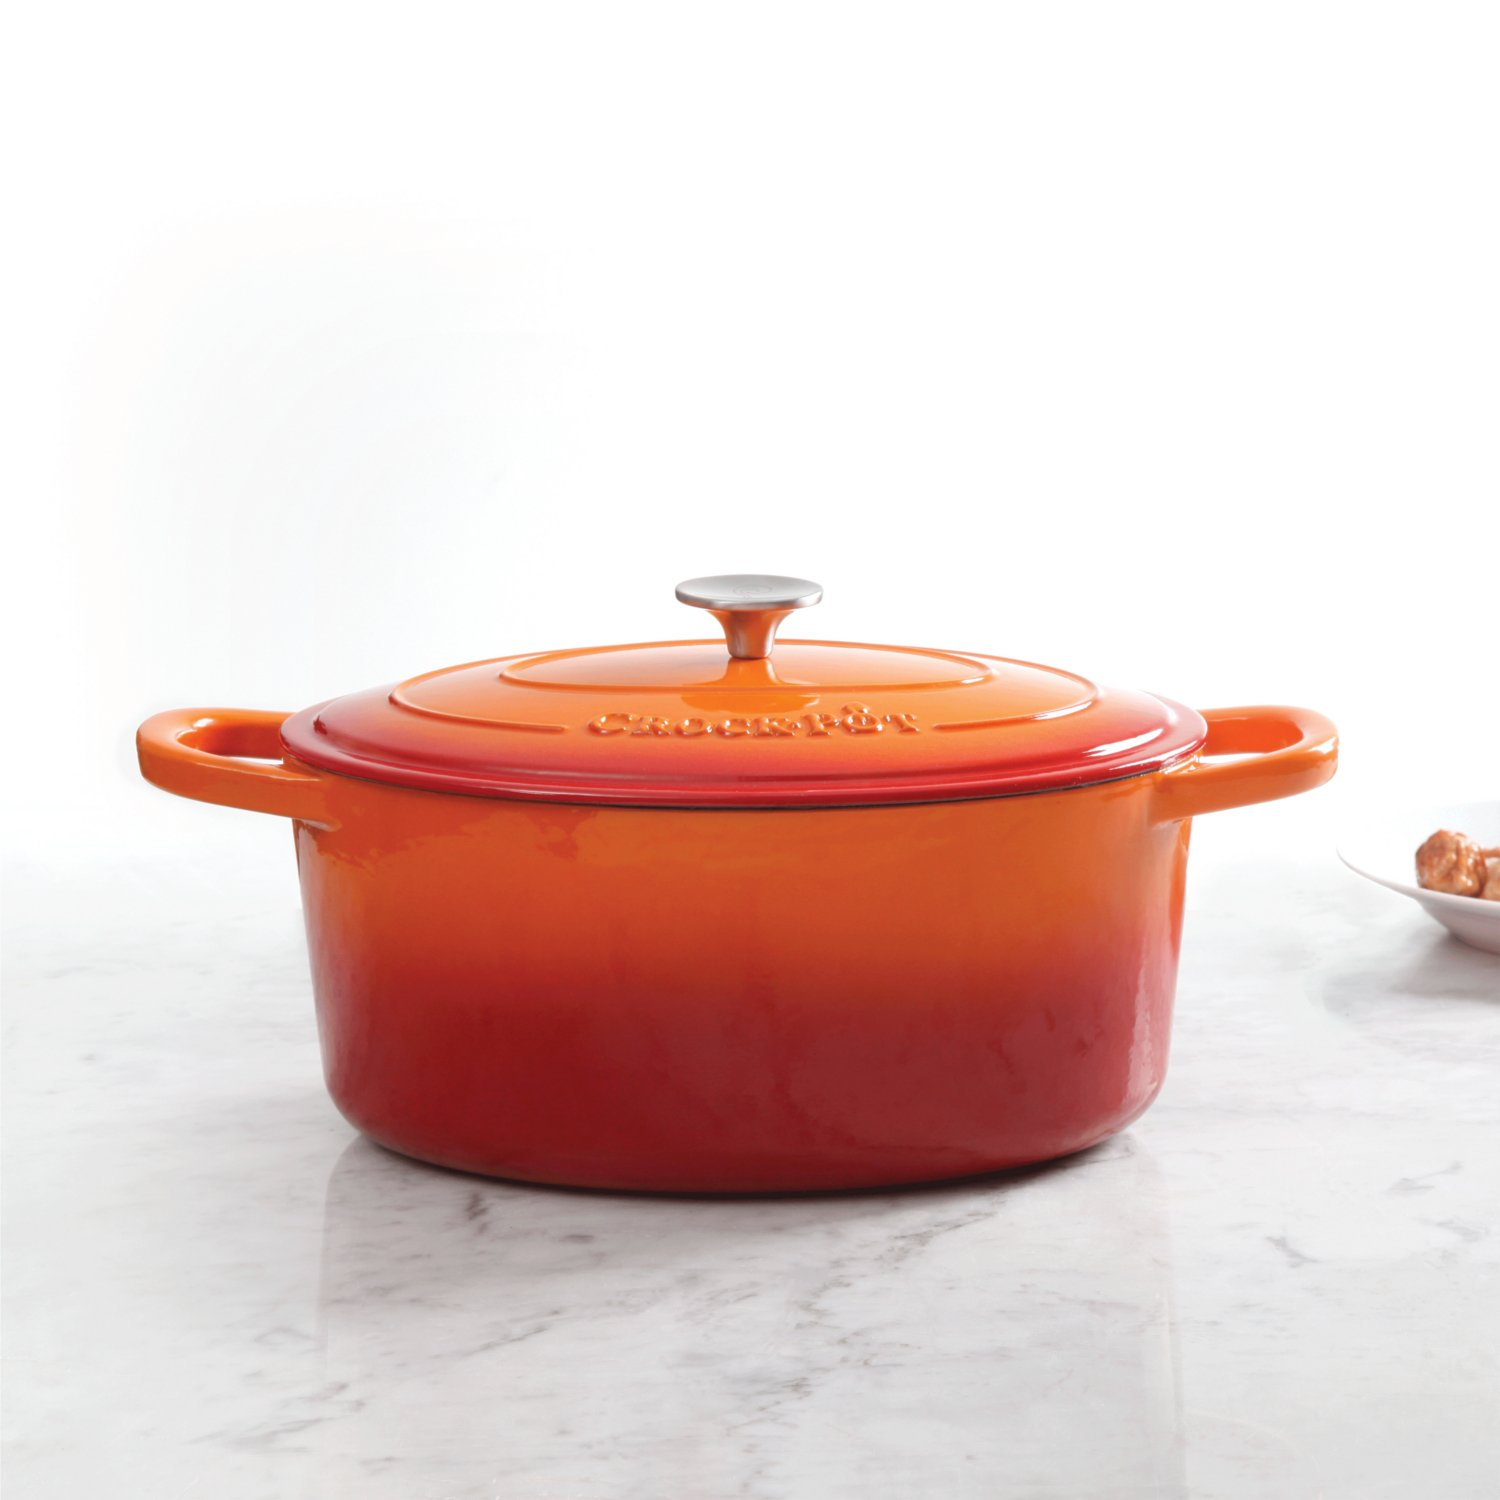 Crock Pot 109470.02 Artisan Enameled Cast Iron 7-Quart Oval Dutch Oven, Sunset Orange by Crock-Pot (Image #2)